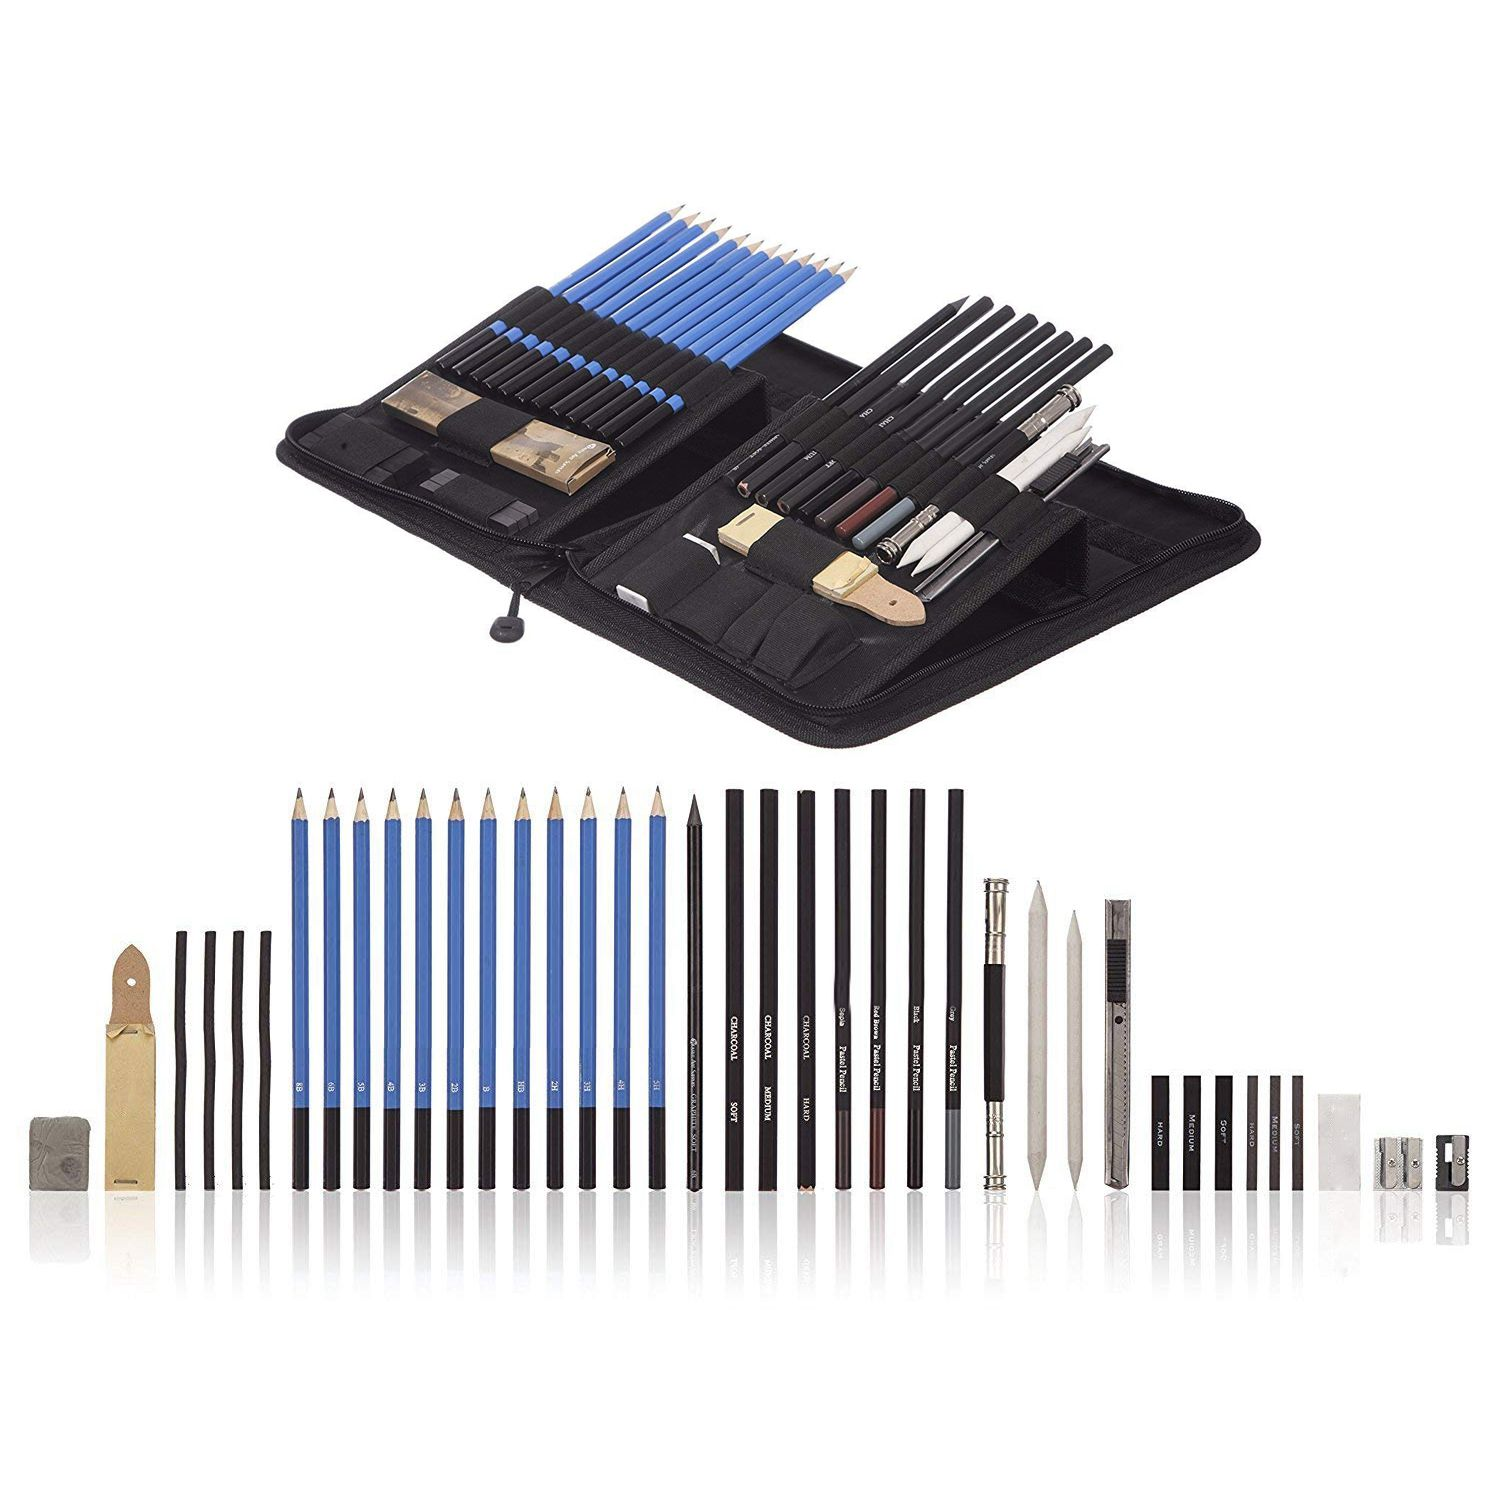 Pastel And Charcoal Pencils And Accessories Making Things Convenient For The People 100% Quality 40 Piece Drawing Pencils And Sketch Set In Pop Up Zipper Case Includes Graphite